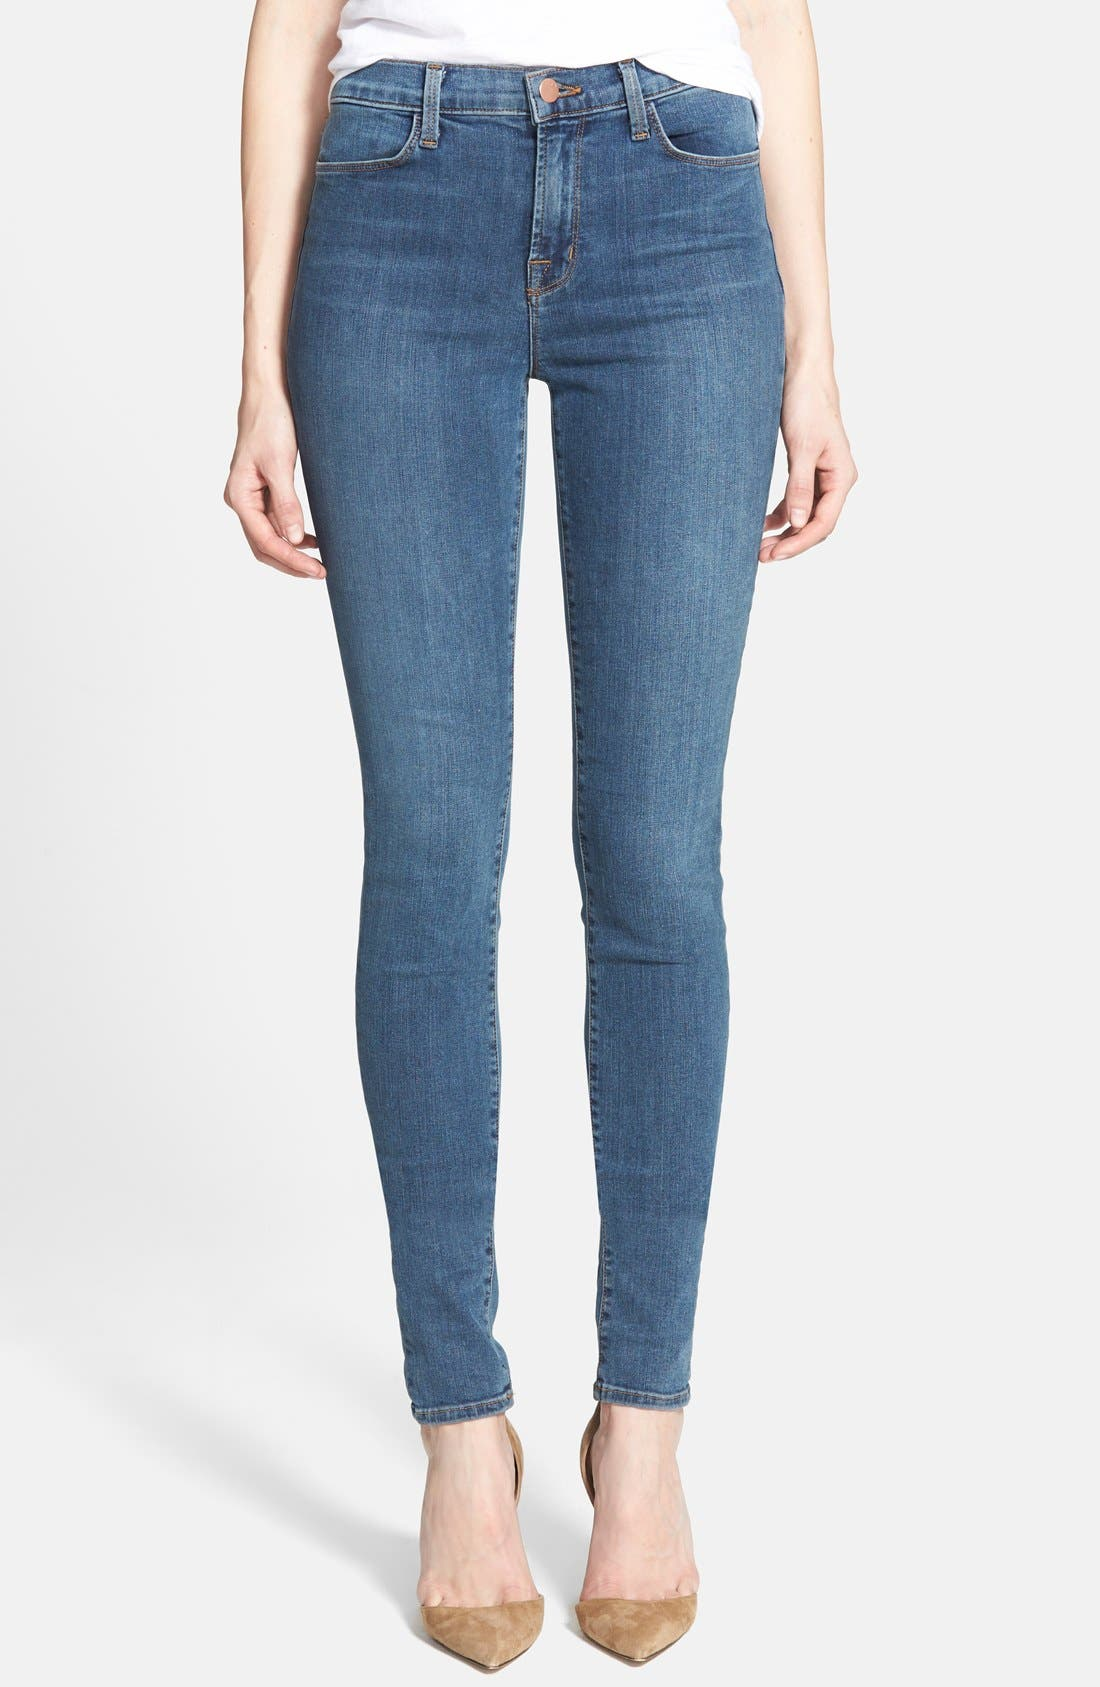 Main Image - J Brand 'Jess' High Rise Stacked Skinny Jeans (Beloved)